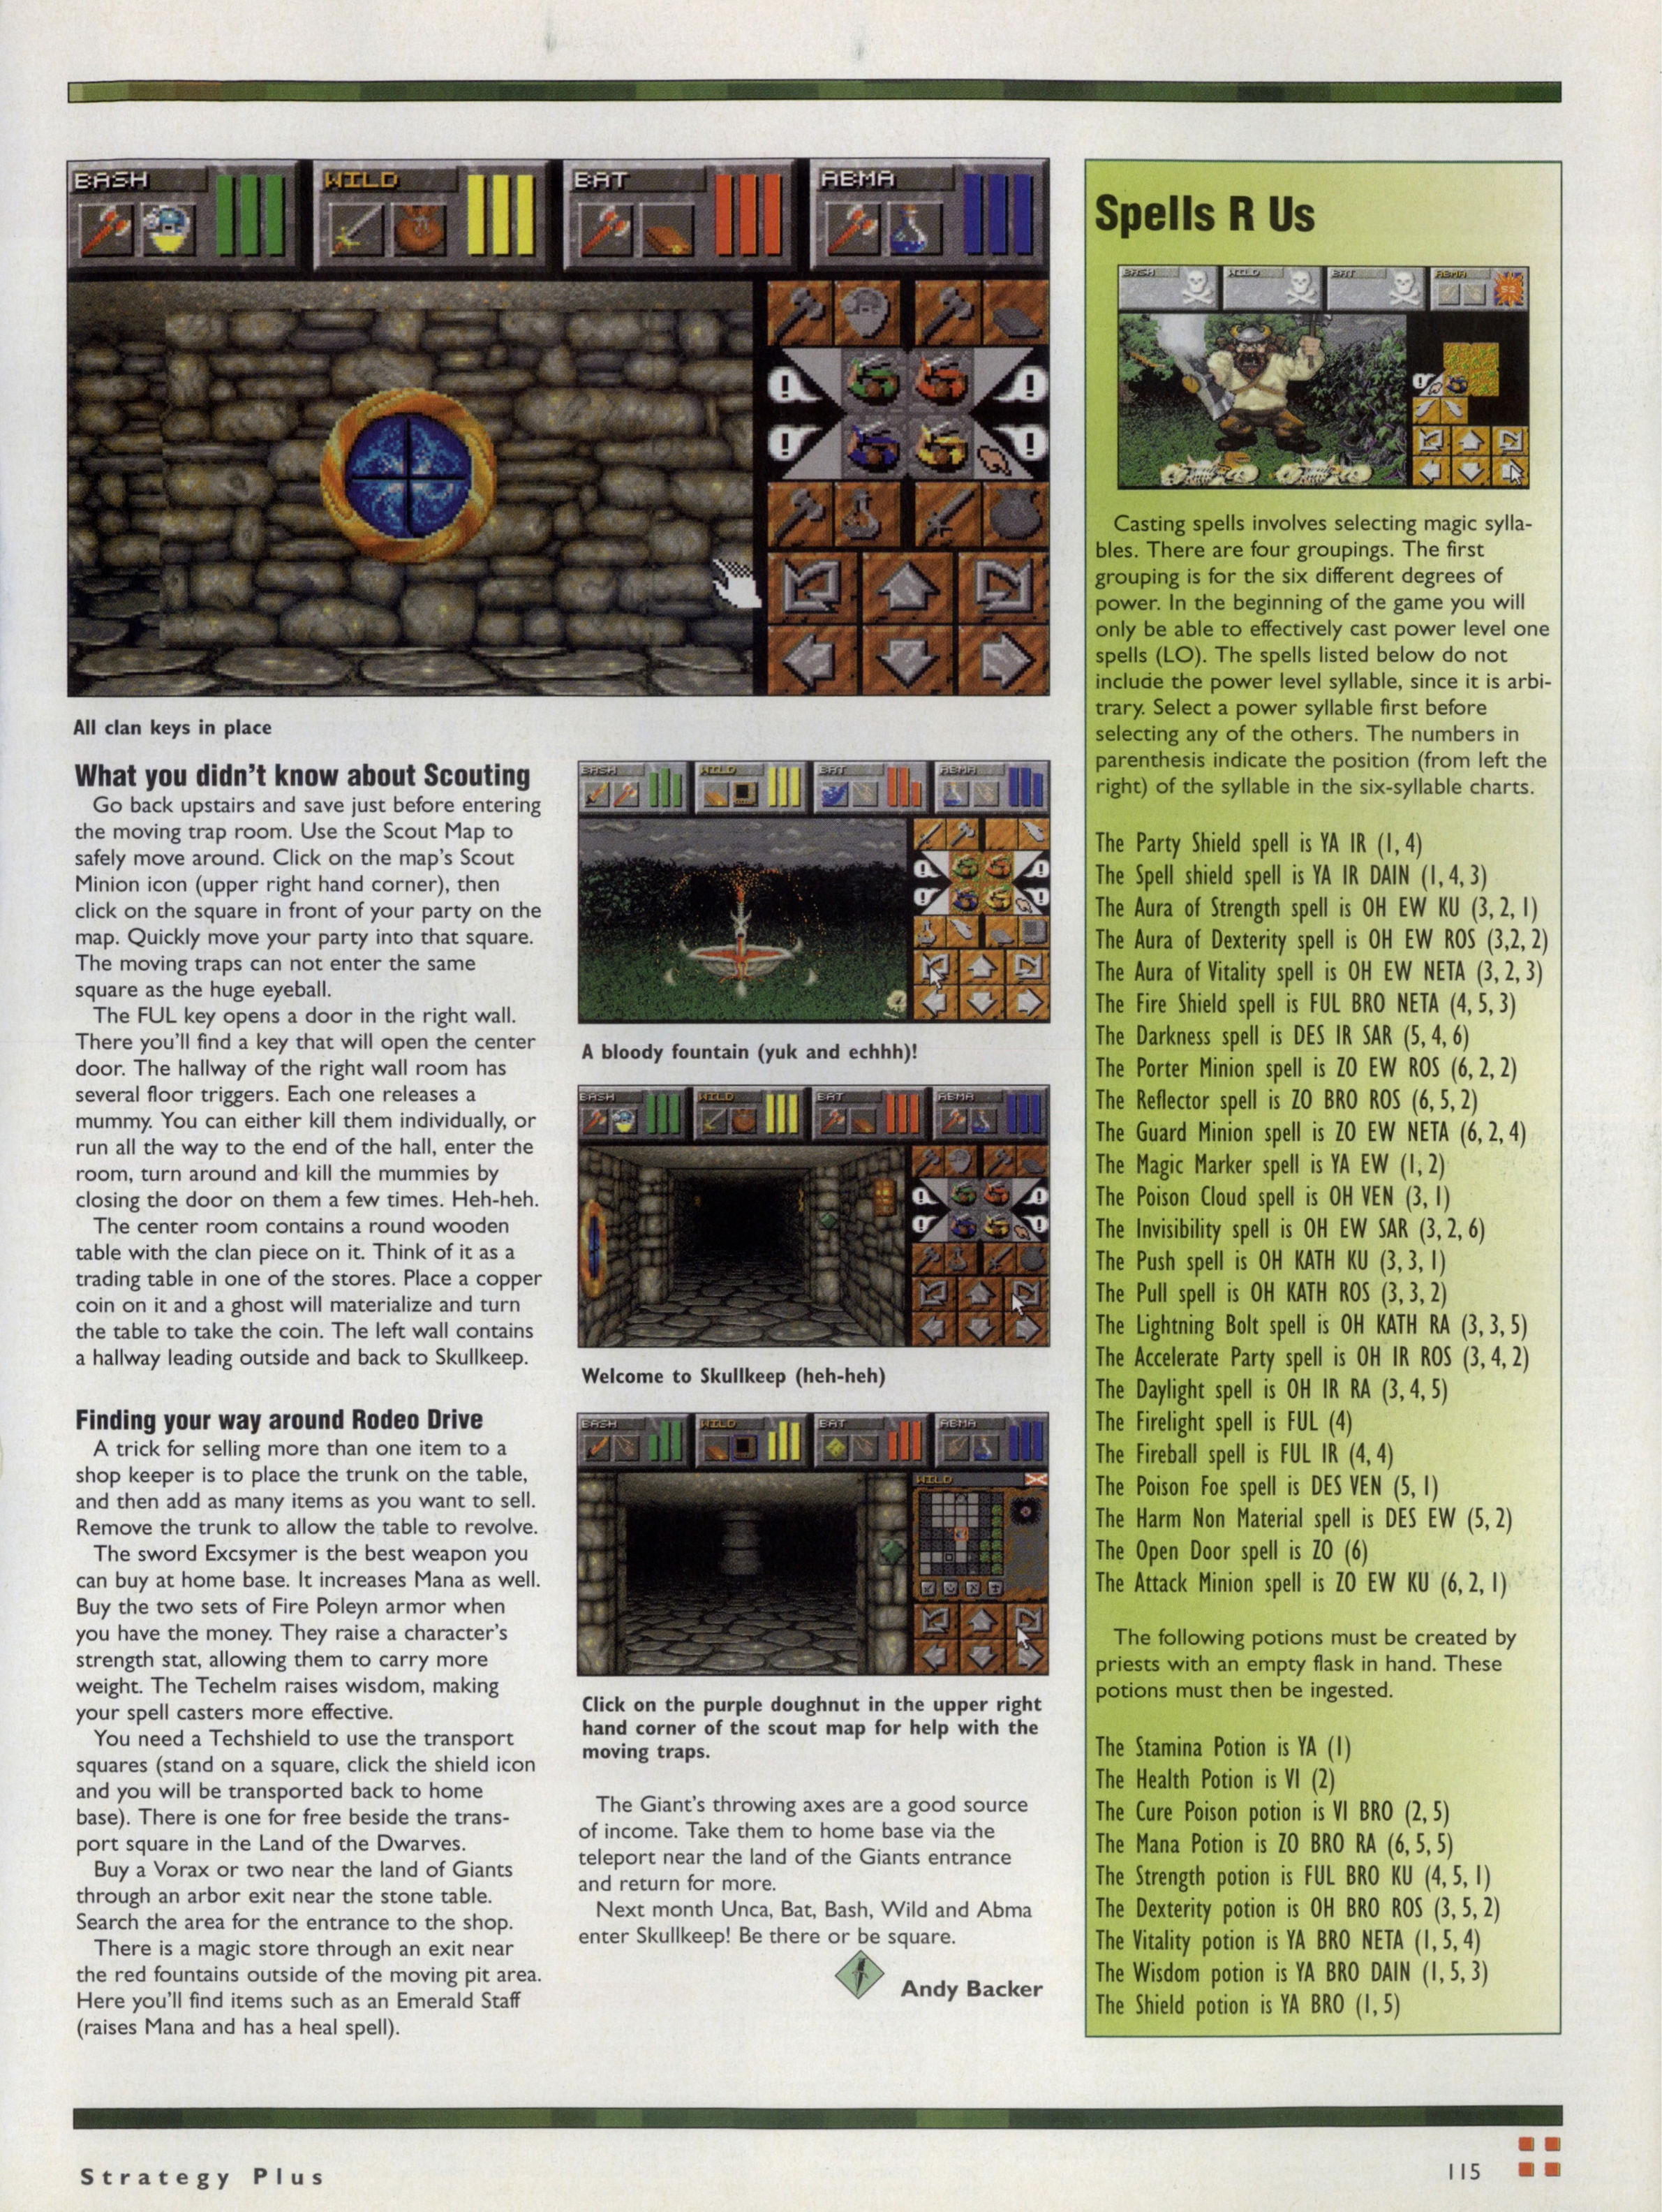 Dungeon Master II Hints published in British-American-Canadian magazine 'Computer Games Strategy Plus', Issue #60 November 1995, Page 115